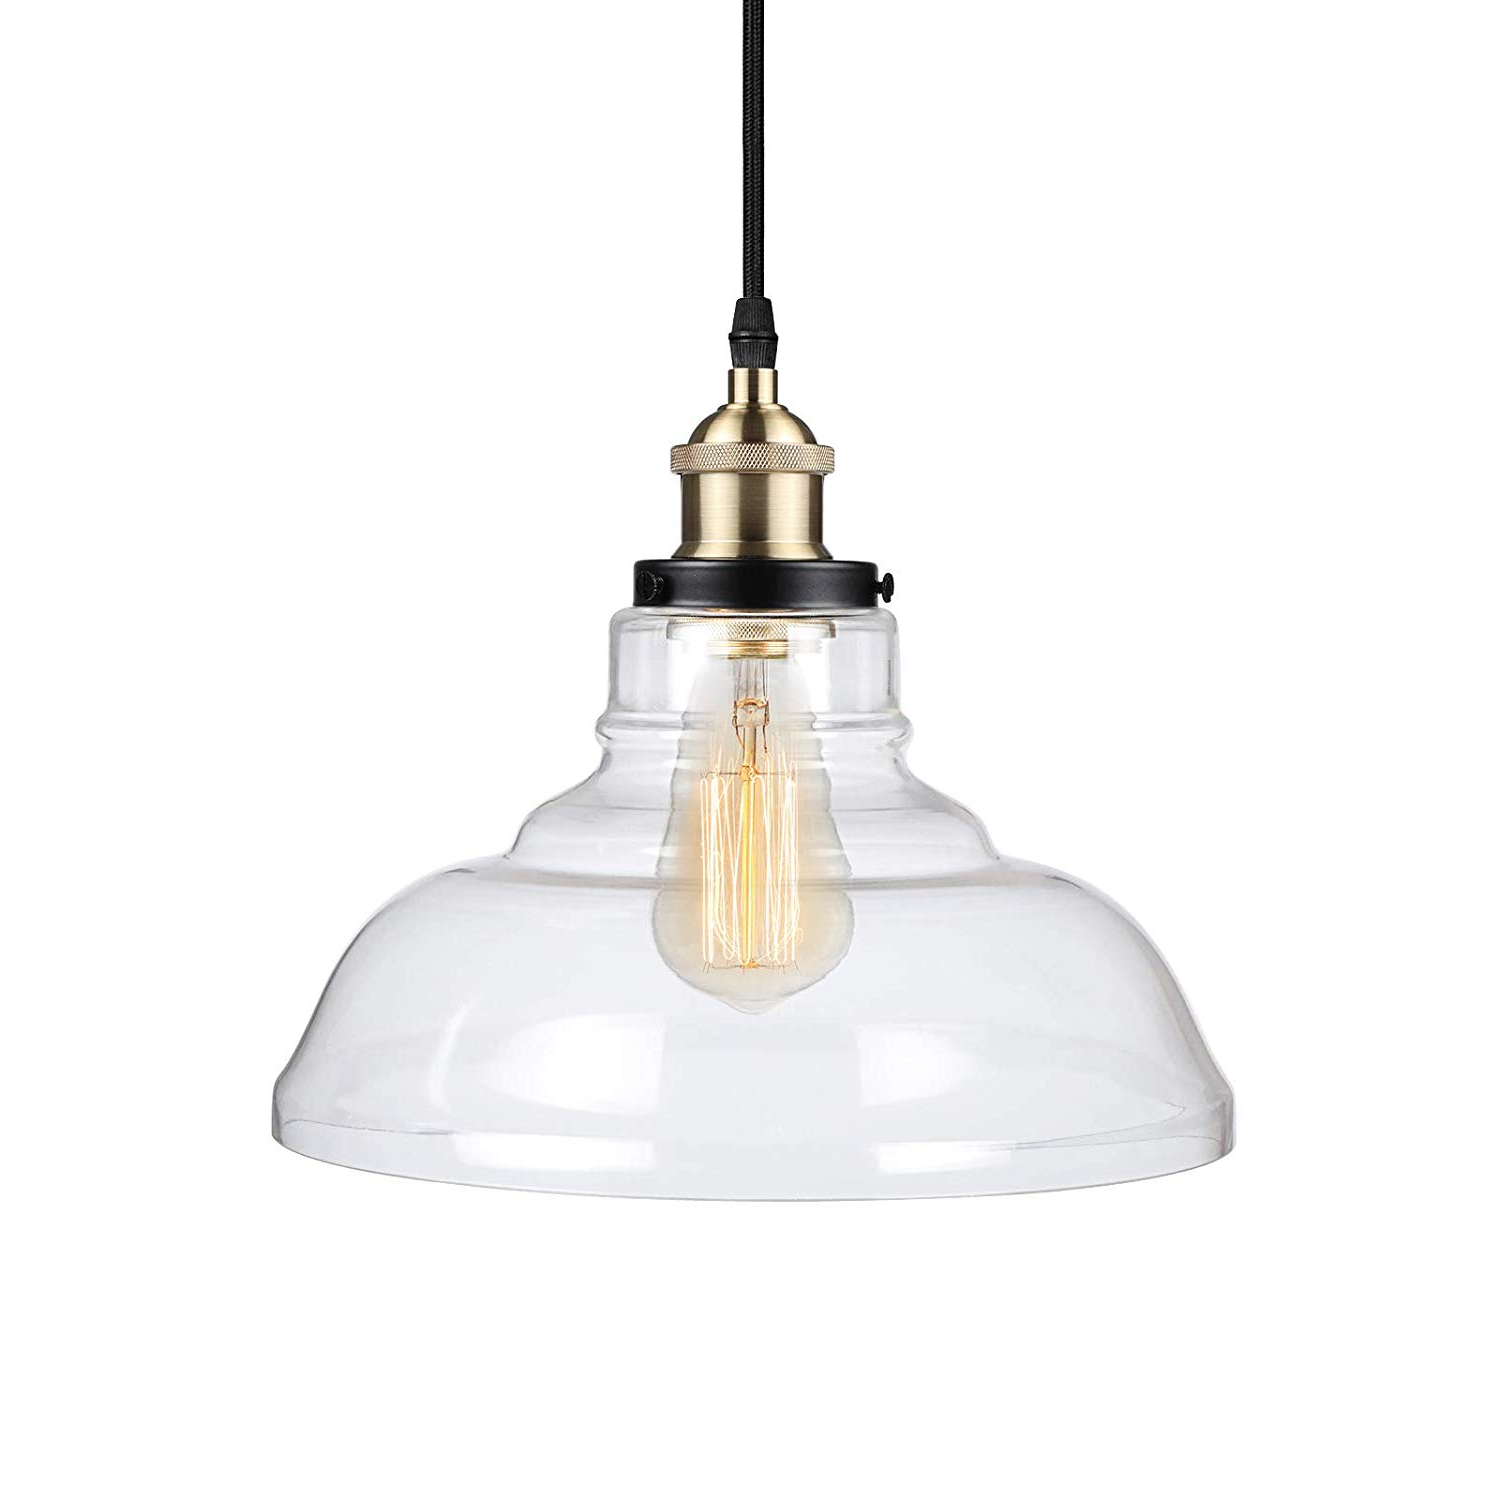 Most Recent Vintage Edison 1 Light Bowl Pendants With Ascher Industrial Edison Vintage Pendant Light, Clear Glass Shade 1 Light  Ceiling Light Fixture, Antique Brass Brushed E26 Socket,  (View 6 of 25)